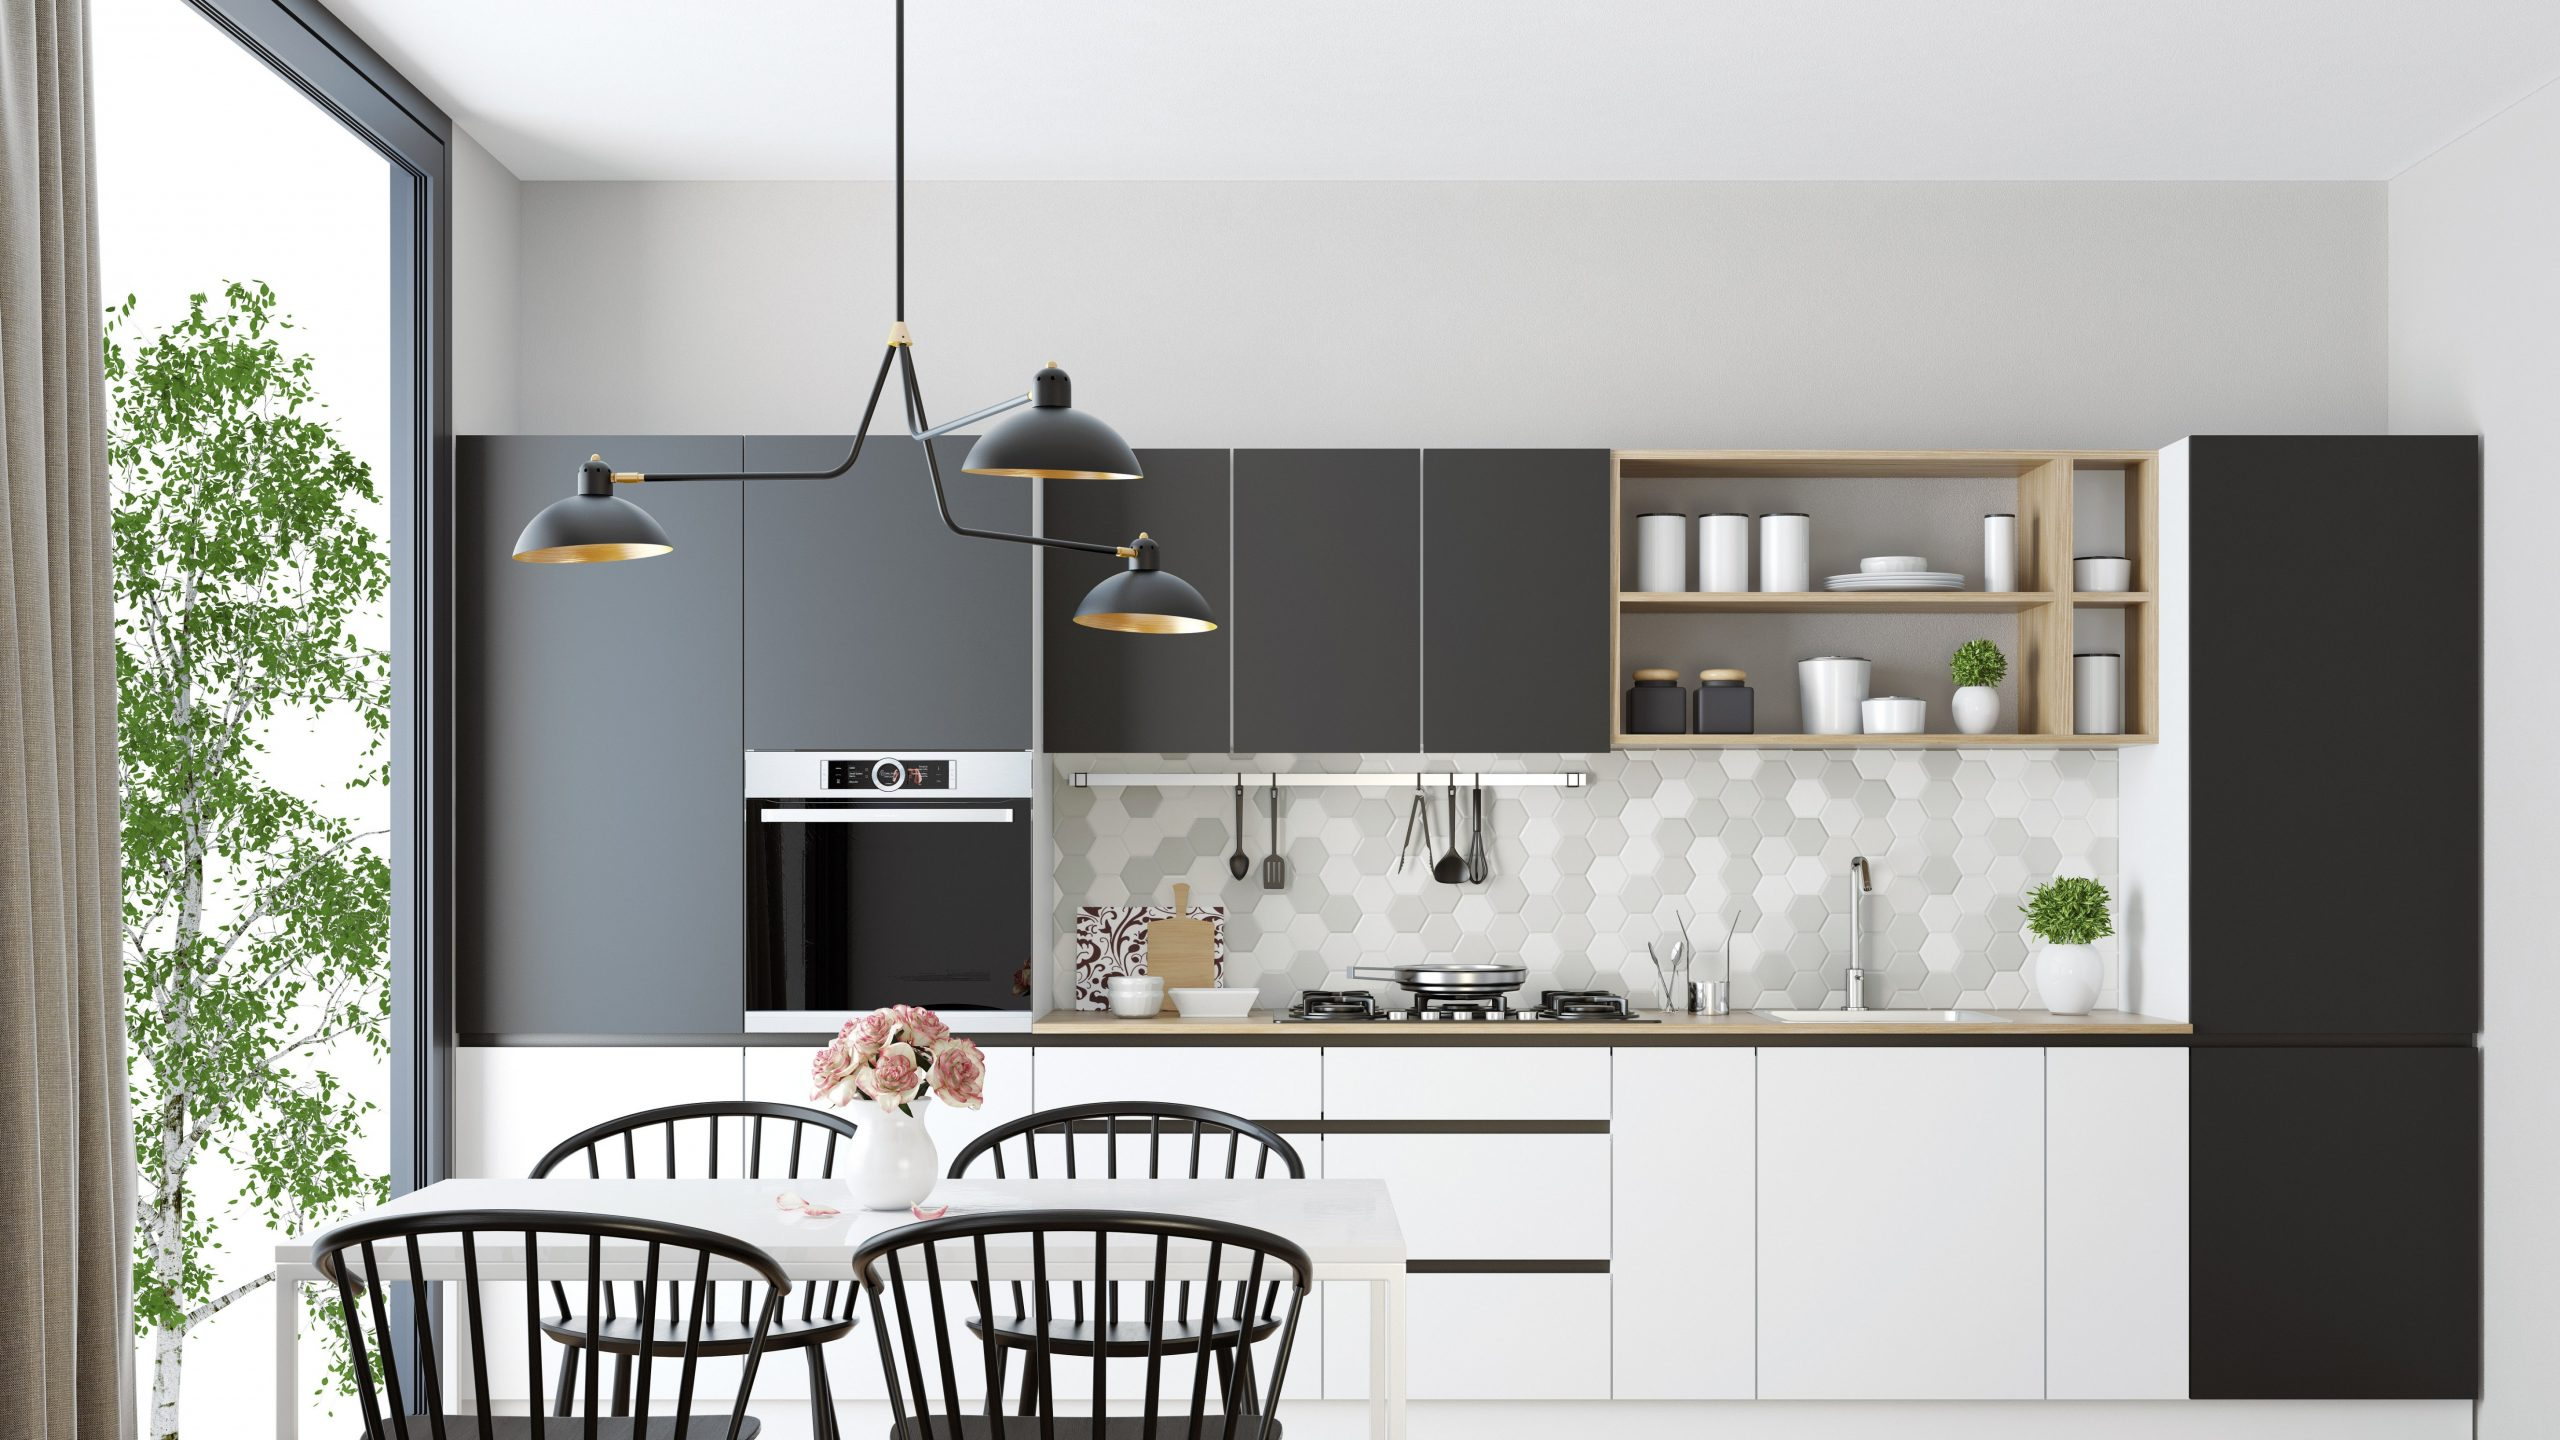 12 Small Kitchen Design Ideas That Make the Most of a Tiny Space  - Apartment Kitchen Design Ideas